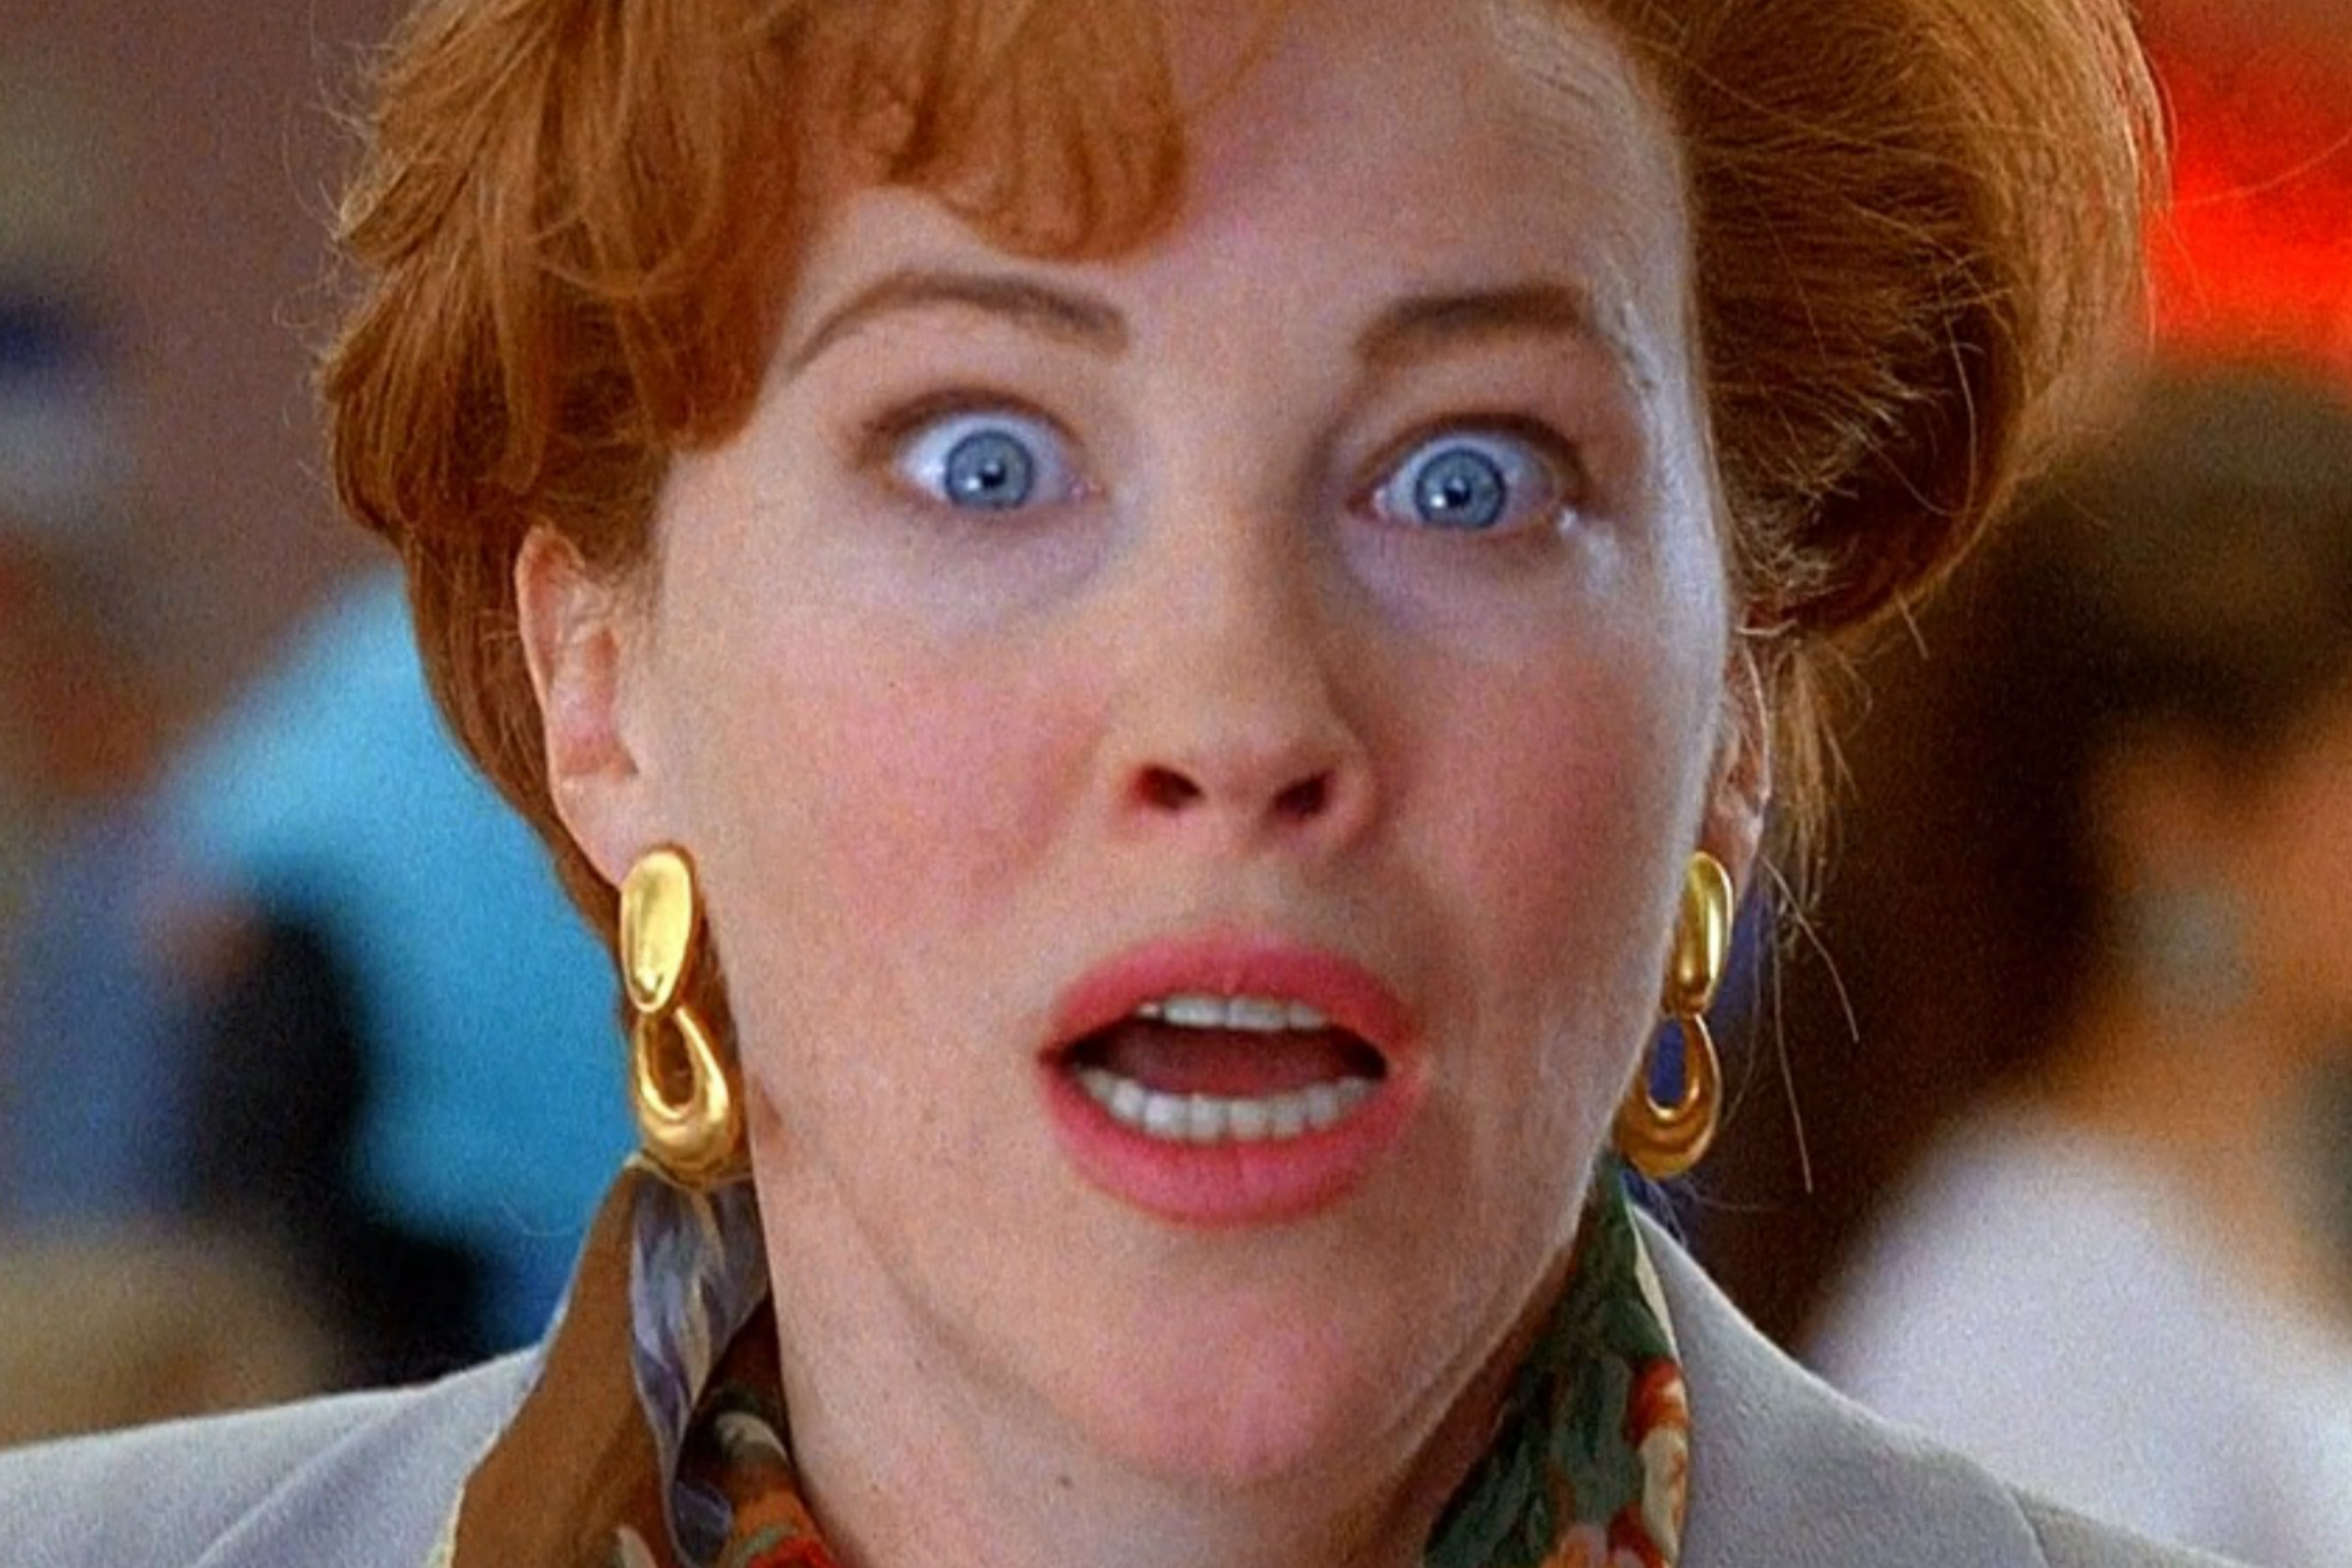 Catherine O'Hara, a white woman with short red hair who looks shocked, plays Kate McCallister in Home Alone